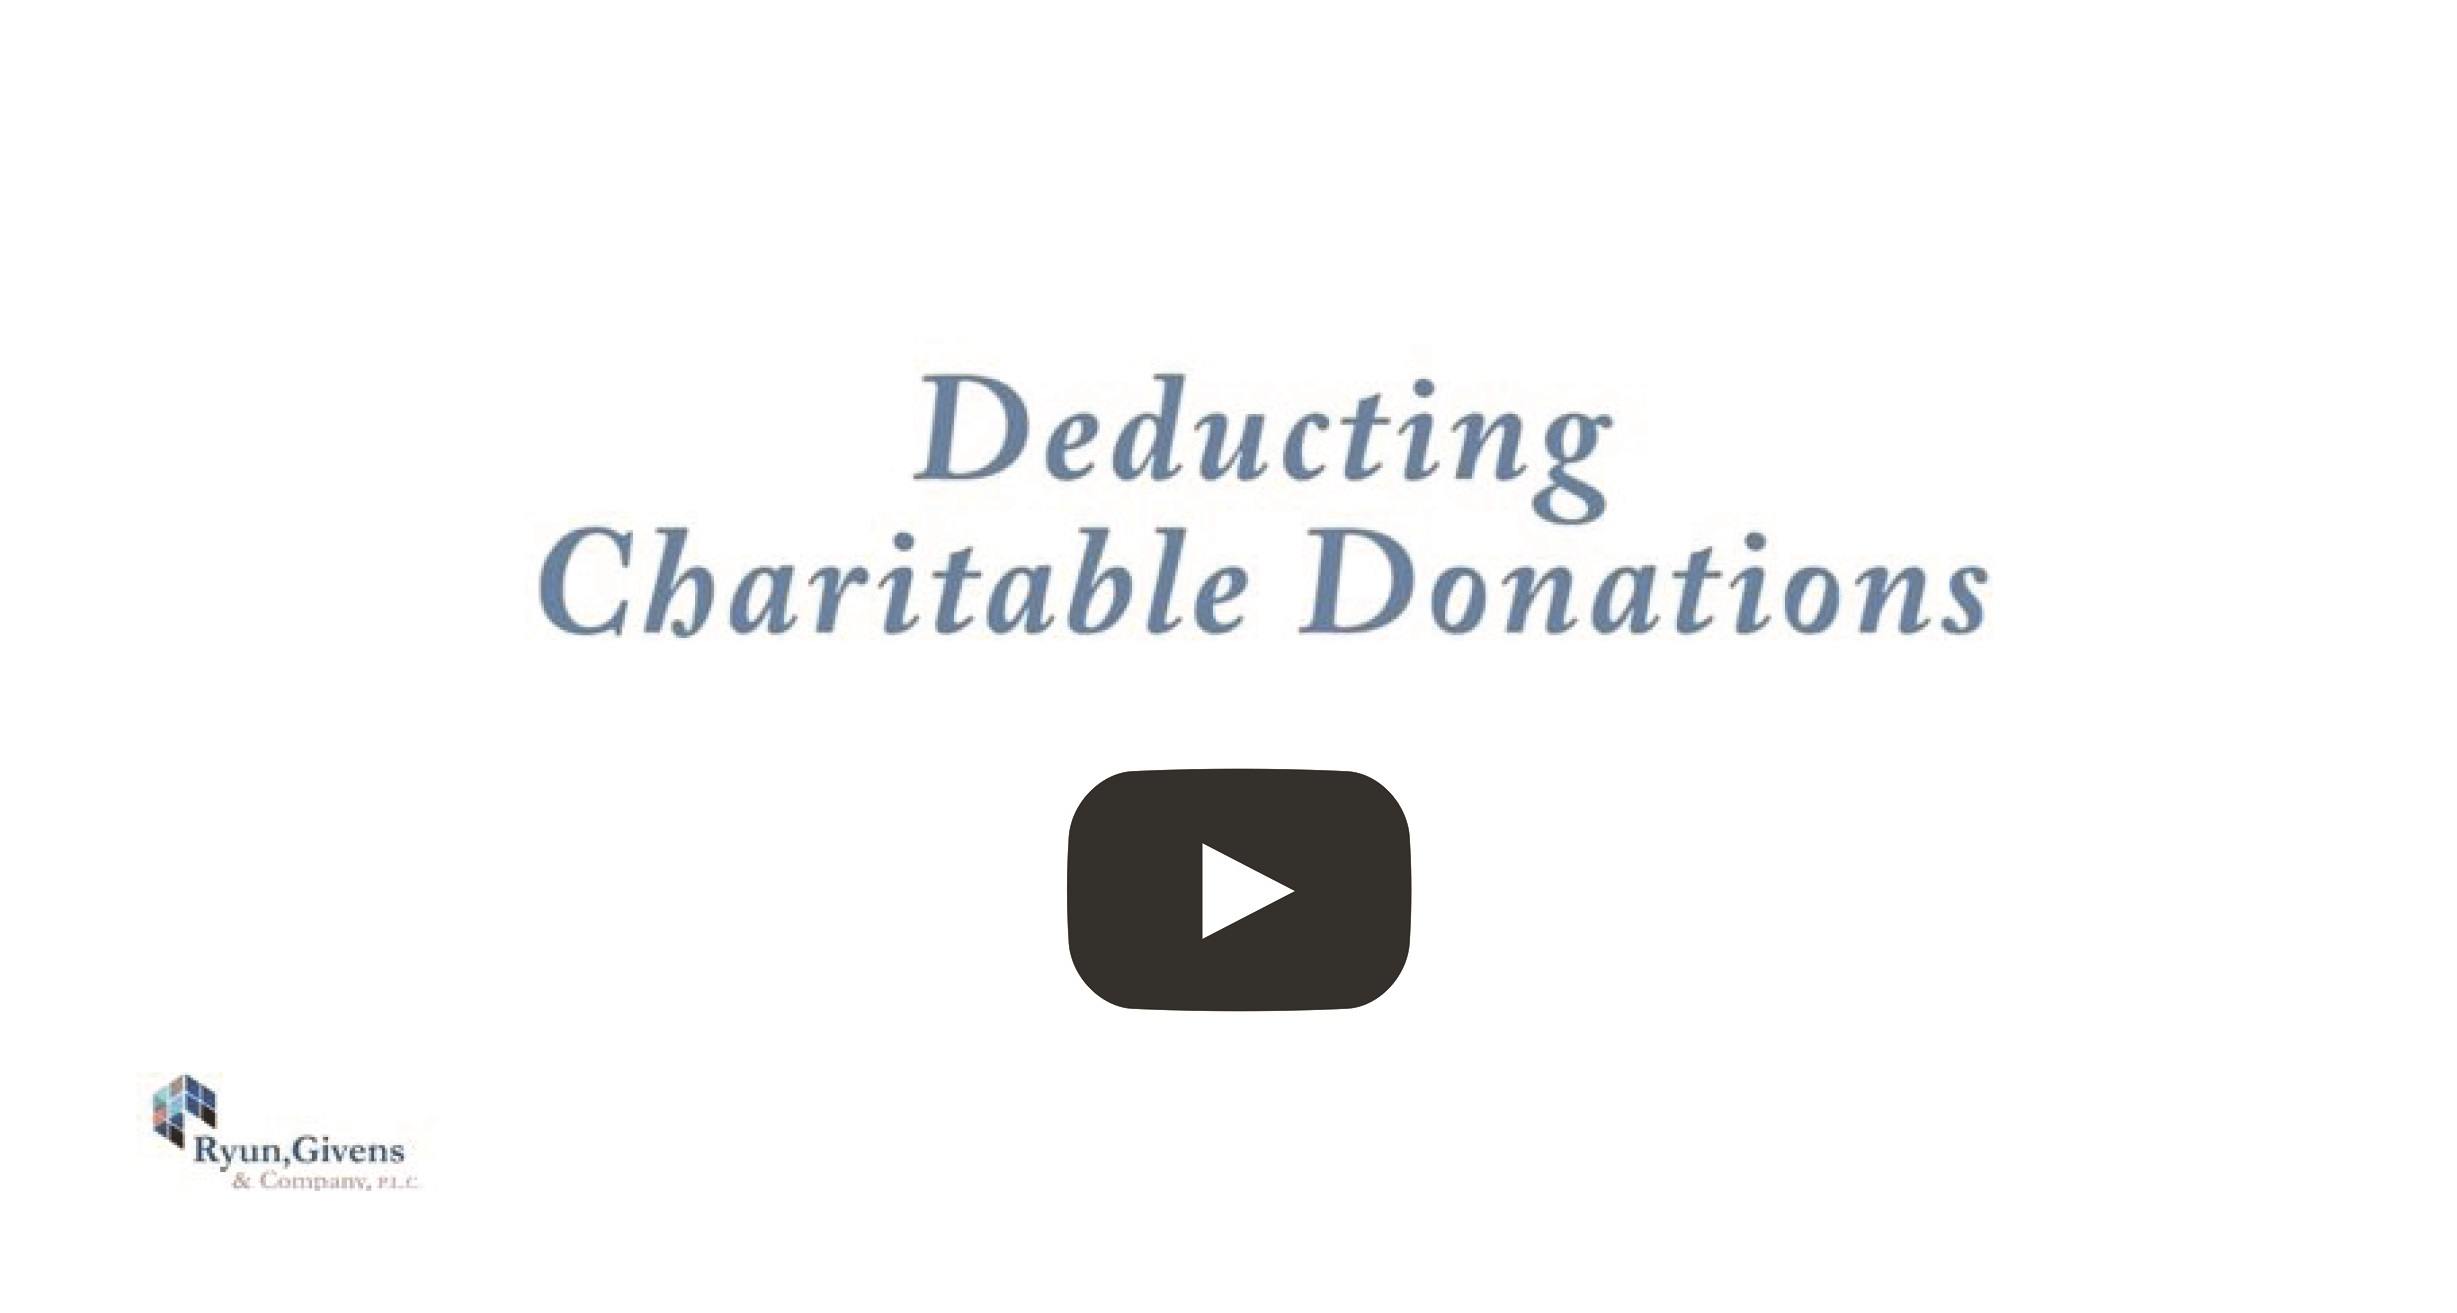 Deducting Charitable Donations